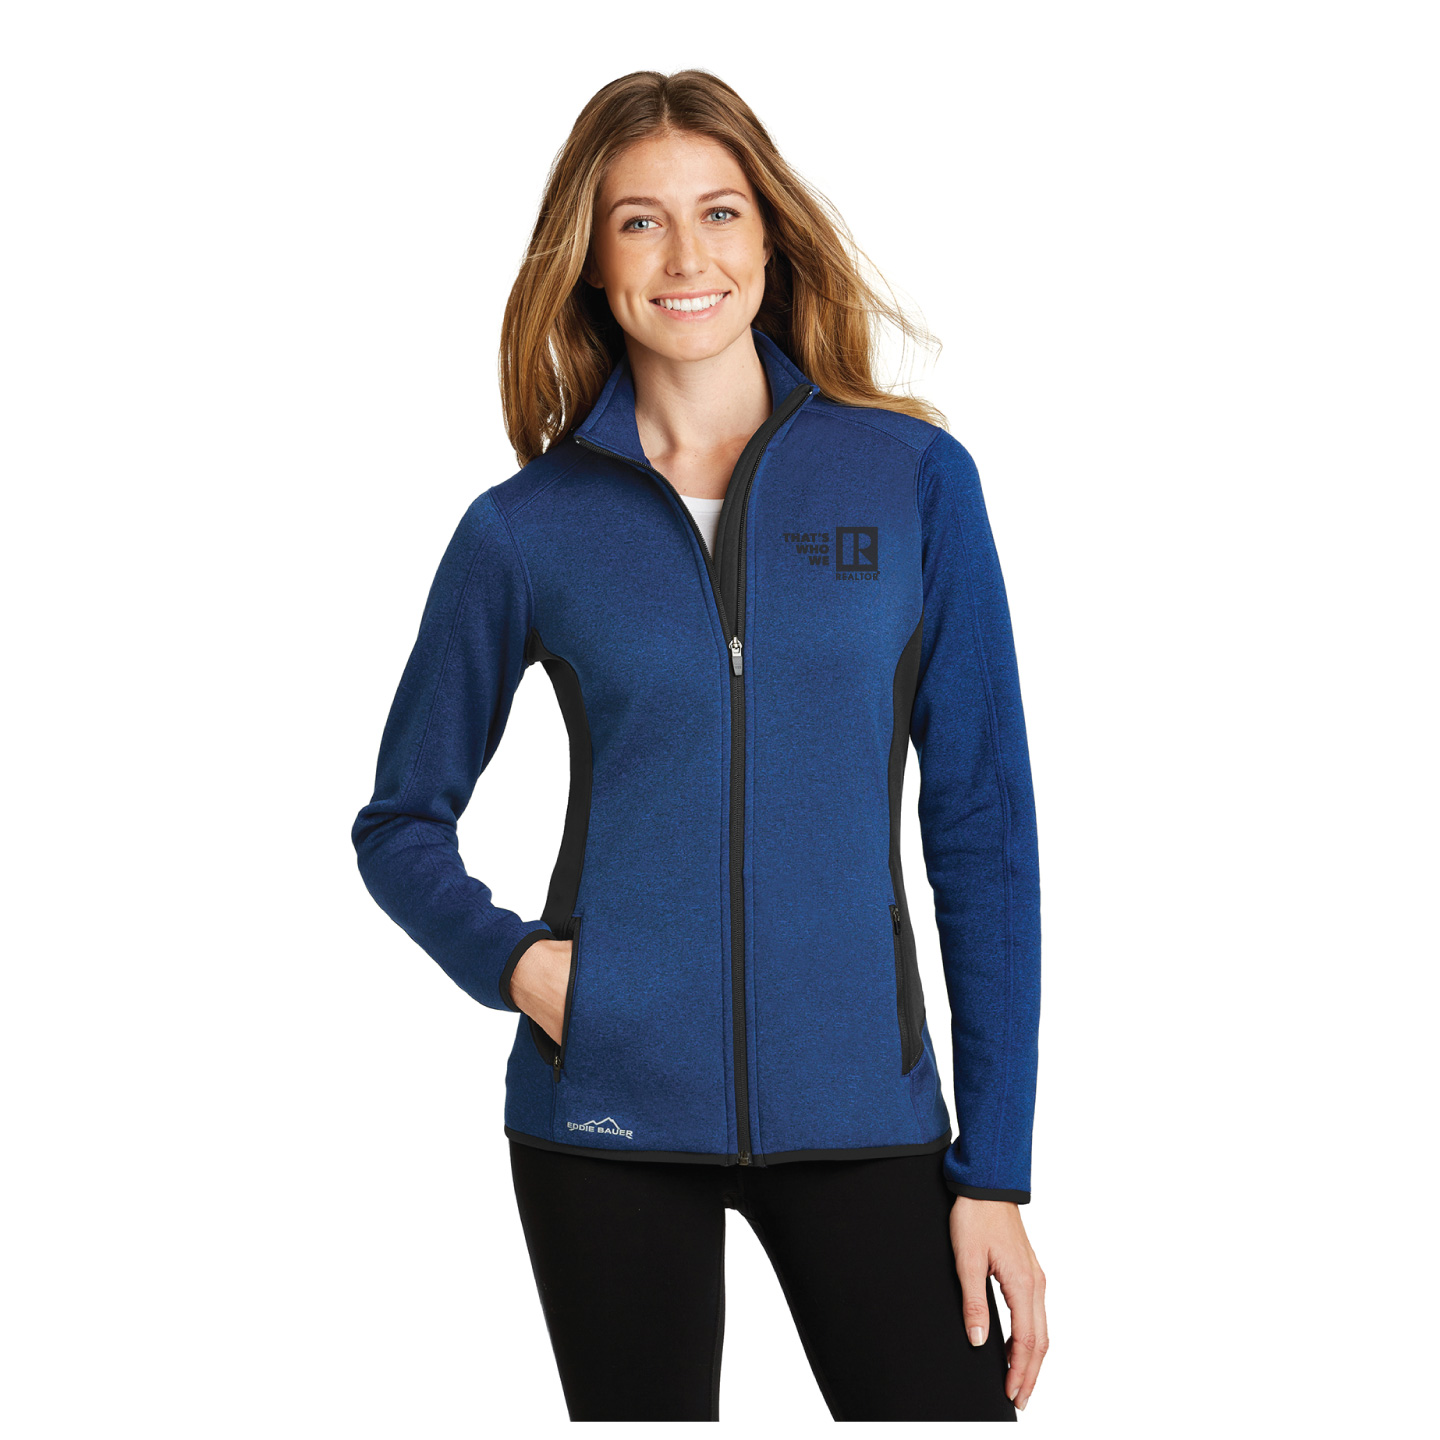 """That's Who We R"" Ladies Eddie Bauer Fleece Jacket  twwr,ThatsWhoWeR,That's,TWWR,ThatWho,That'sWho,Twwr,Thats,Whos,We,Ares,Jacket, Thats Who, Fleece, Brand, Warm, TWWR, Gift, President, Board, Store, Association,"